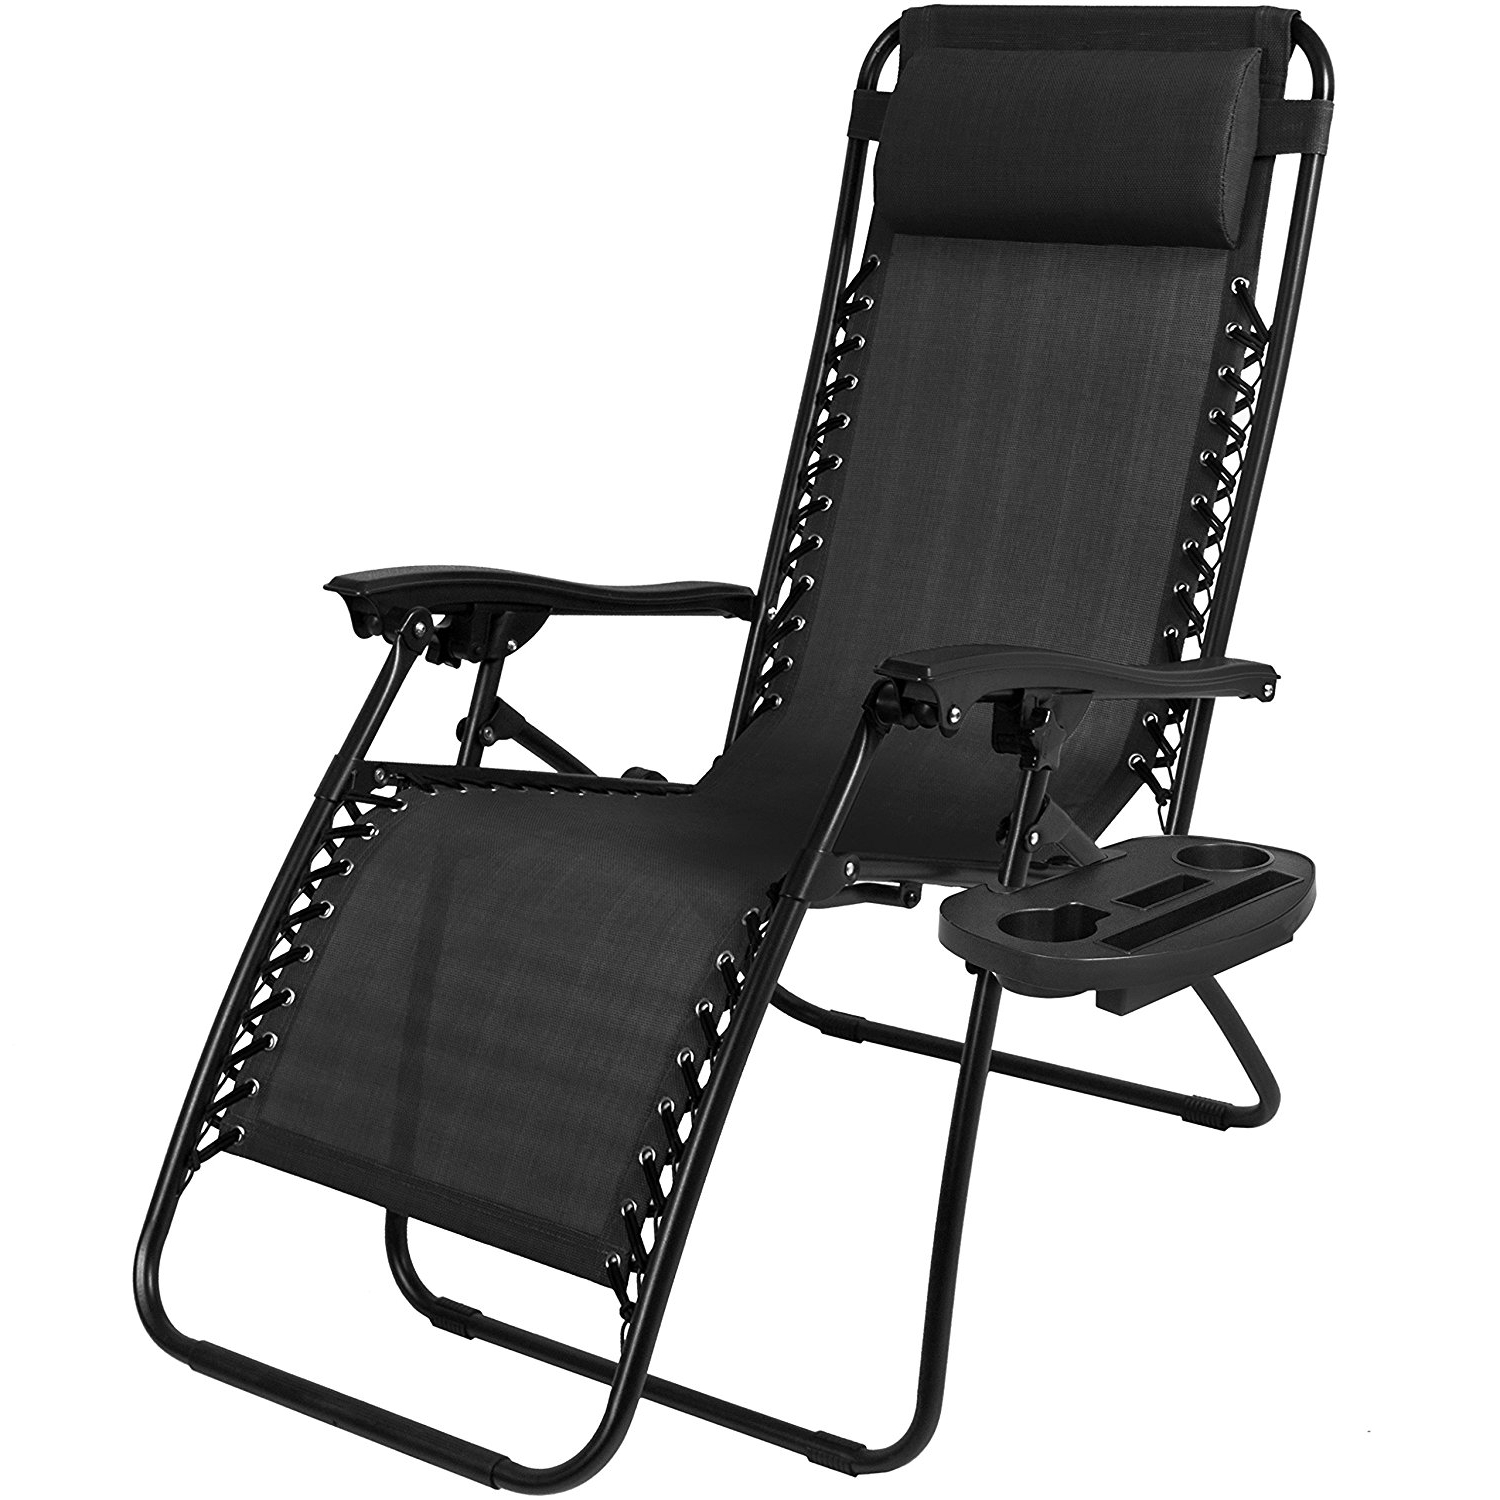 Amazon : Best Choice Products Zero Gravity Chairs Case Of (2 In Recent Zero Gravity Chaise Lounge Chairs (View 4 of 15)